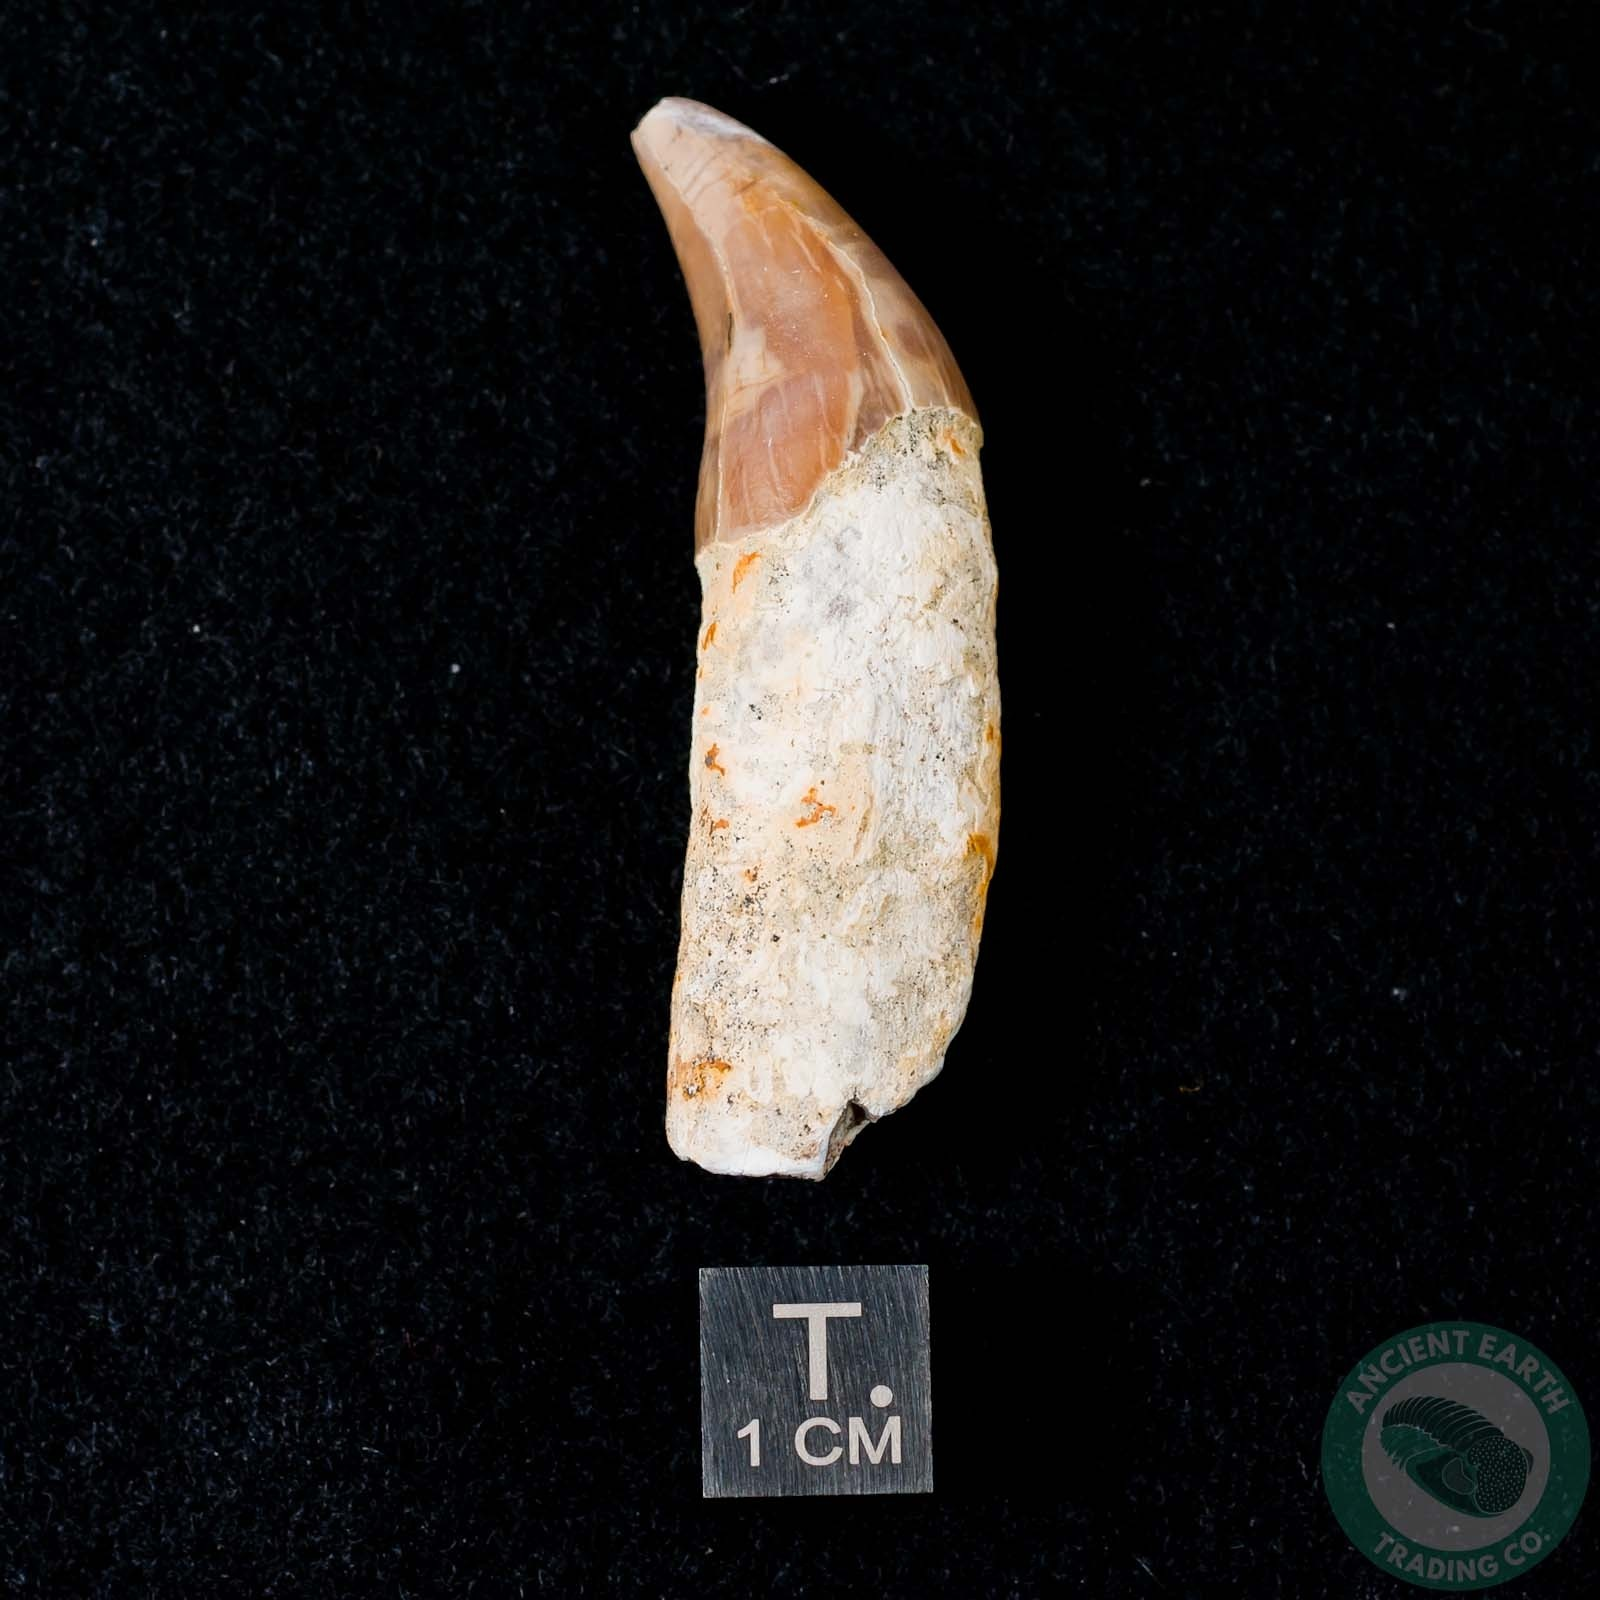 1.98 inch Fossil Pinniped Sea Lion Seal Tooth (Allodesmus kernensis) from Sharktooth Hill, California